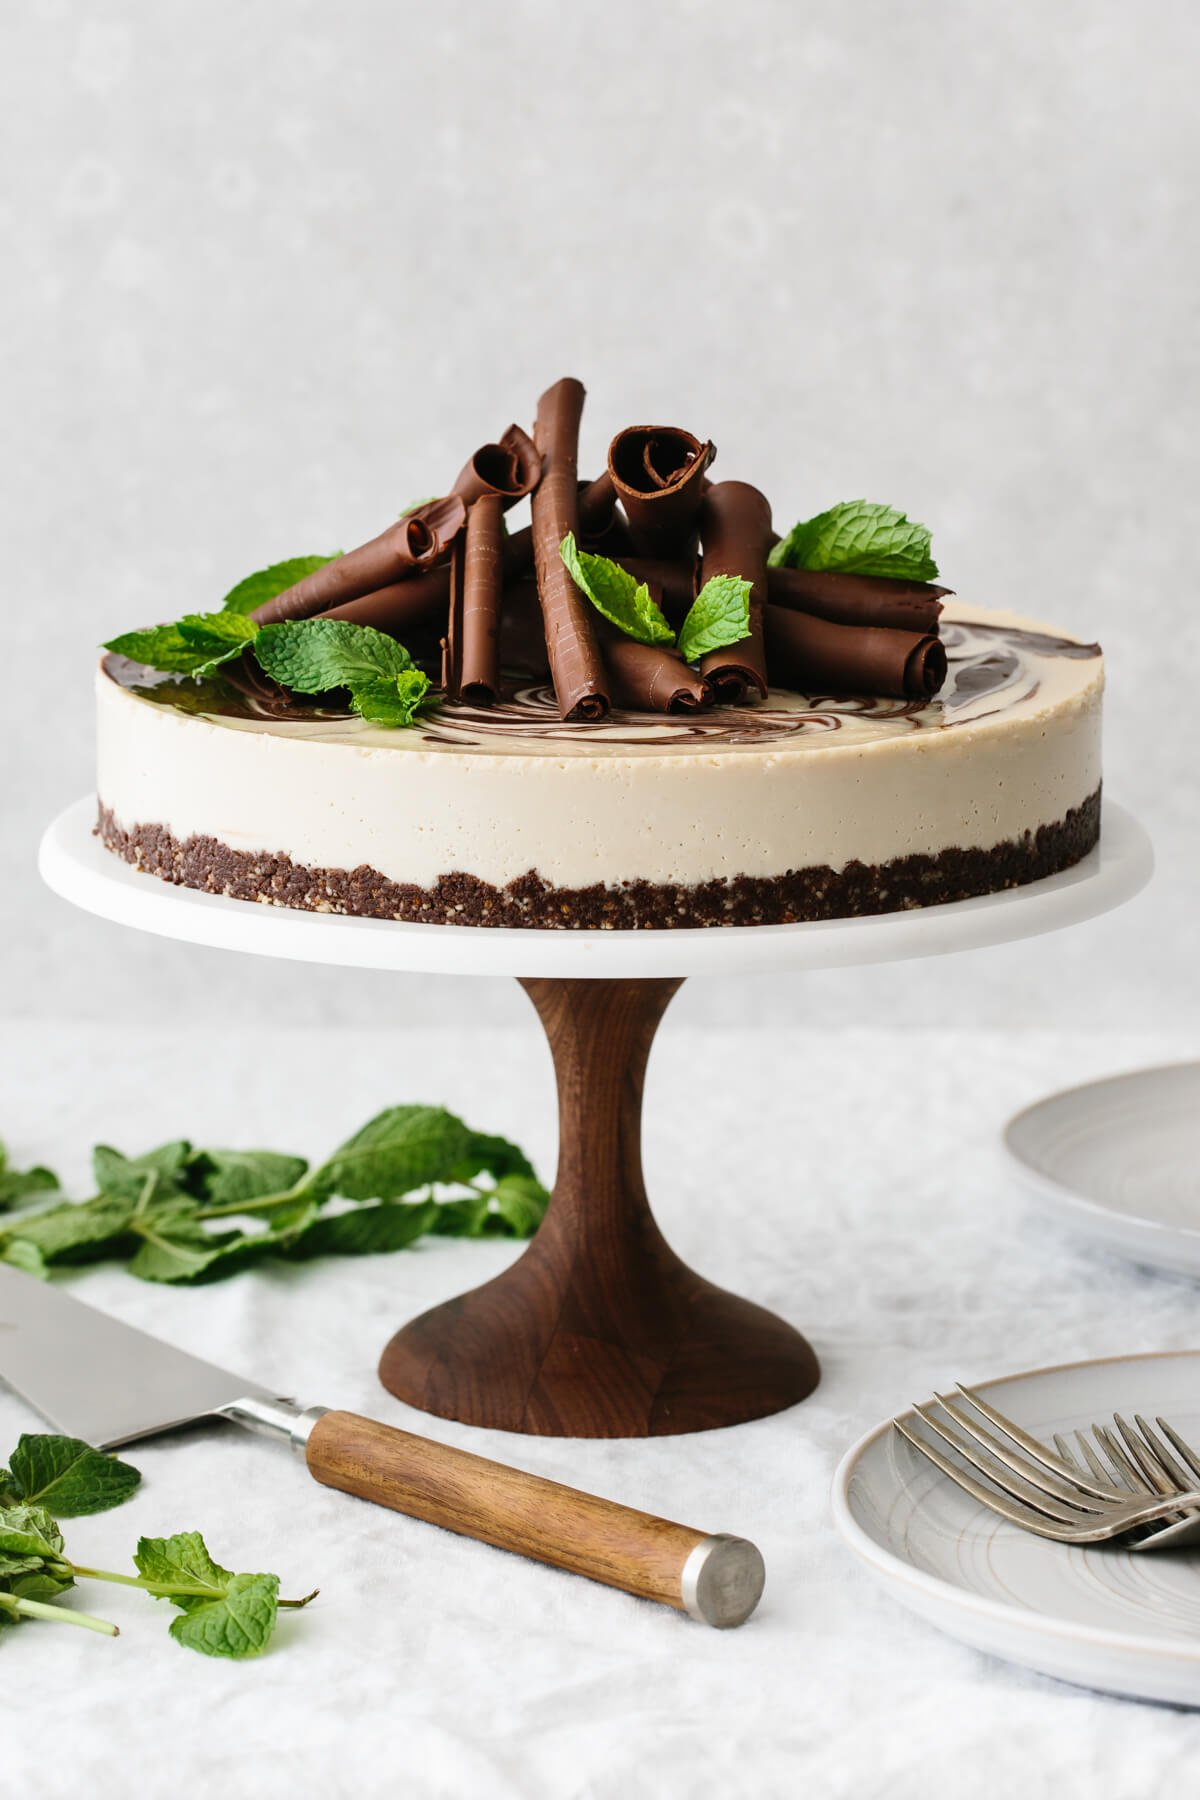 Mint chocolate vegan cheesecake on a cake stand and garnished with chocolate curls and mint leaves.